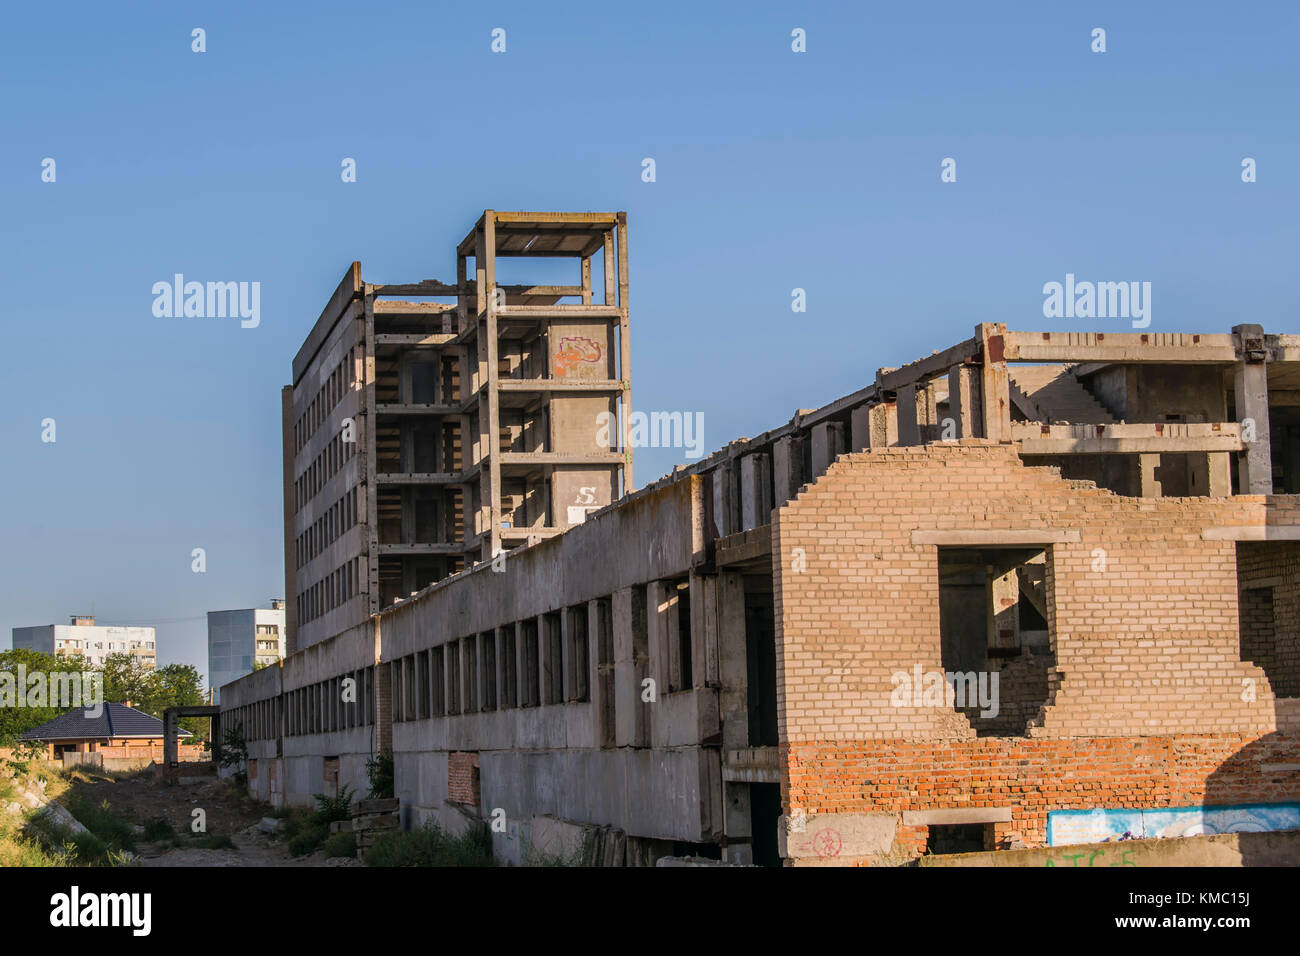 Construction Engineering Building And Developing Of Modern Civil Engineering Construction Industry